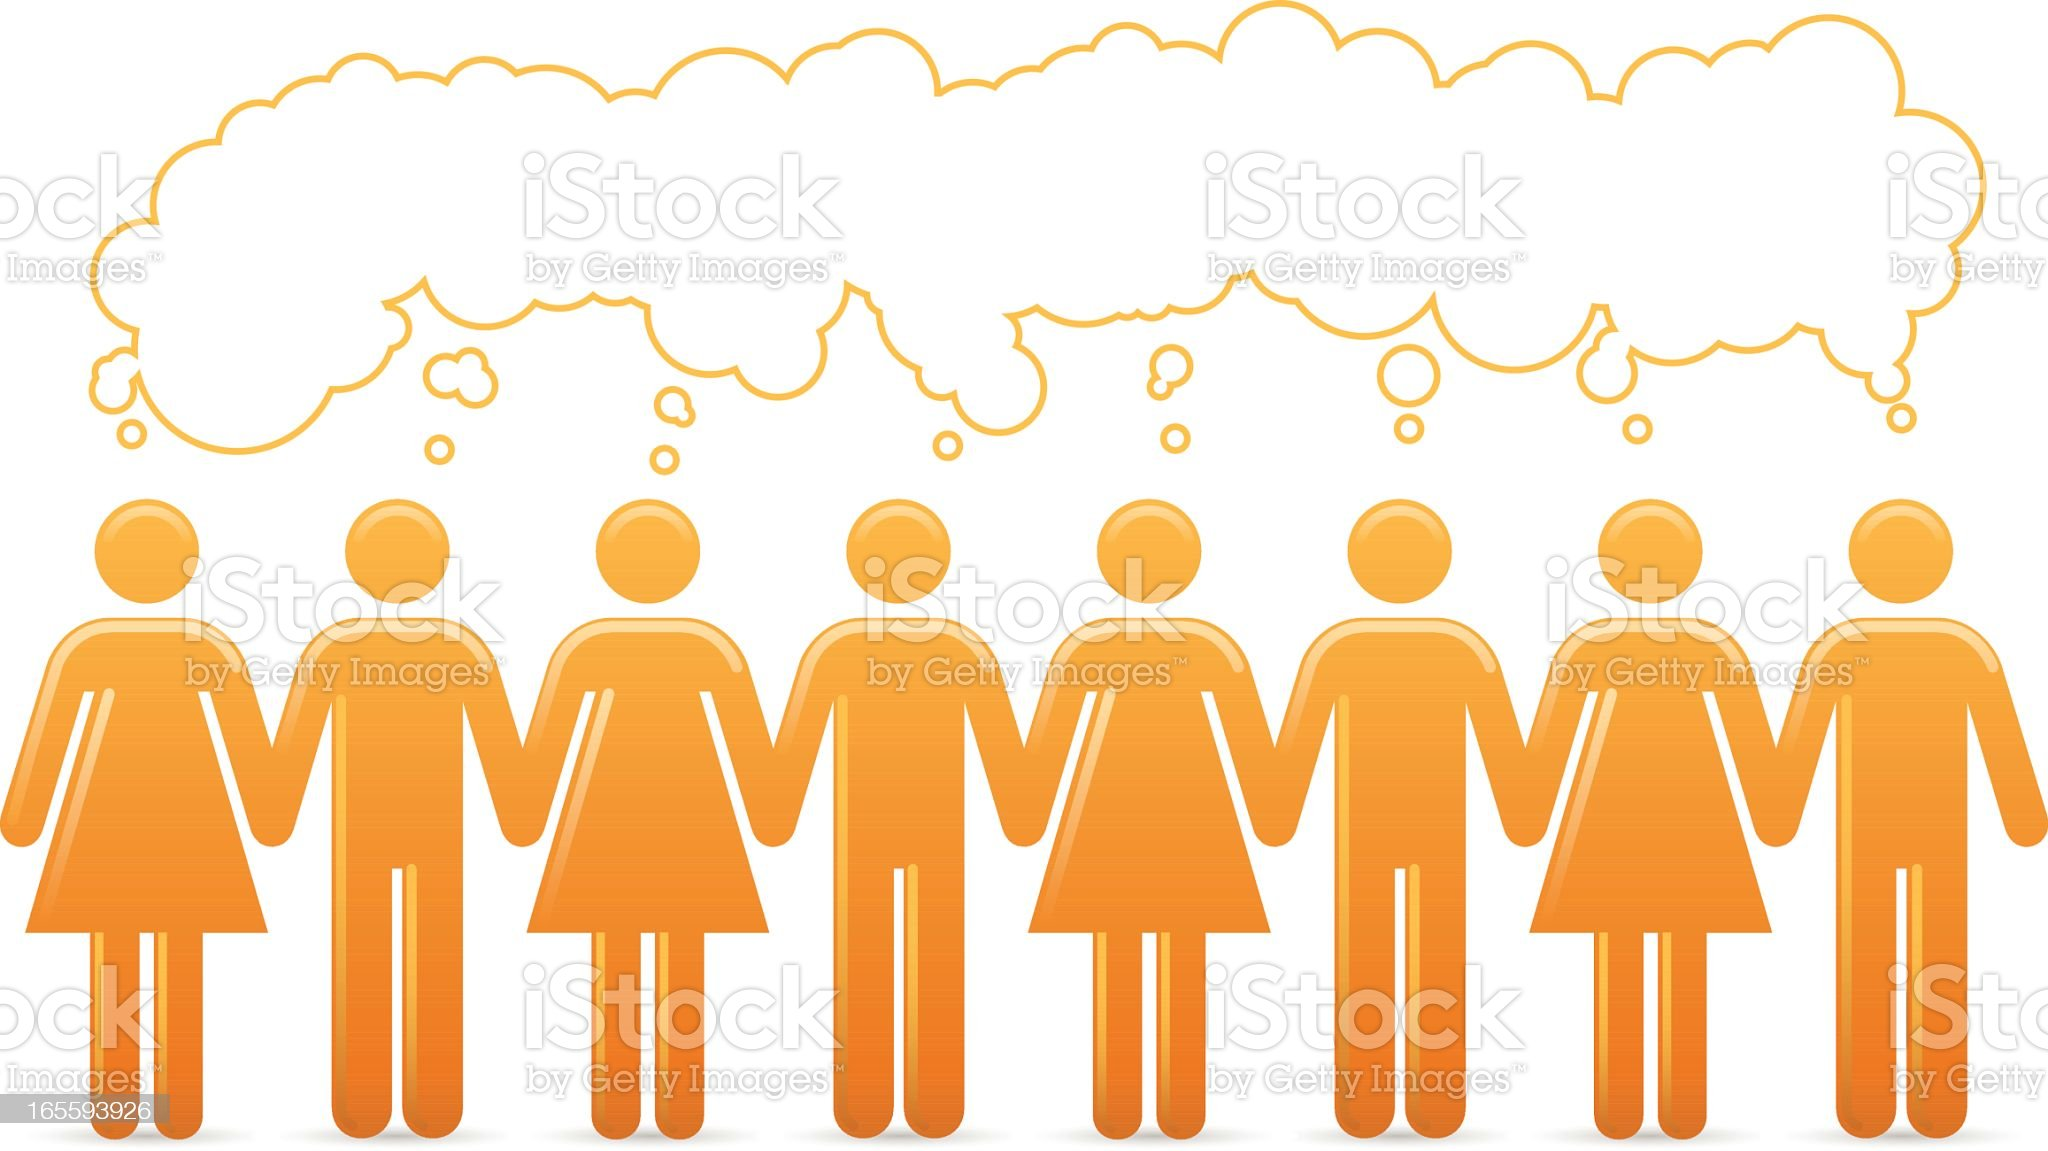 Thinking the Same Thought royalty-free stock vector art